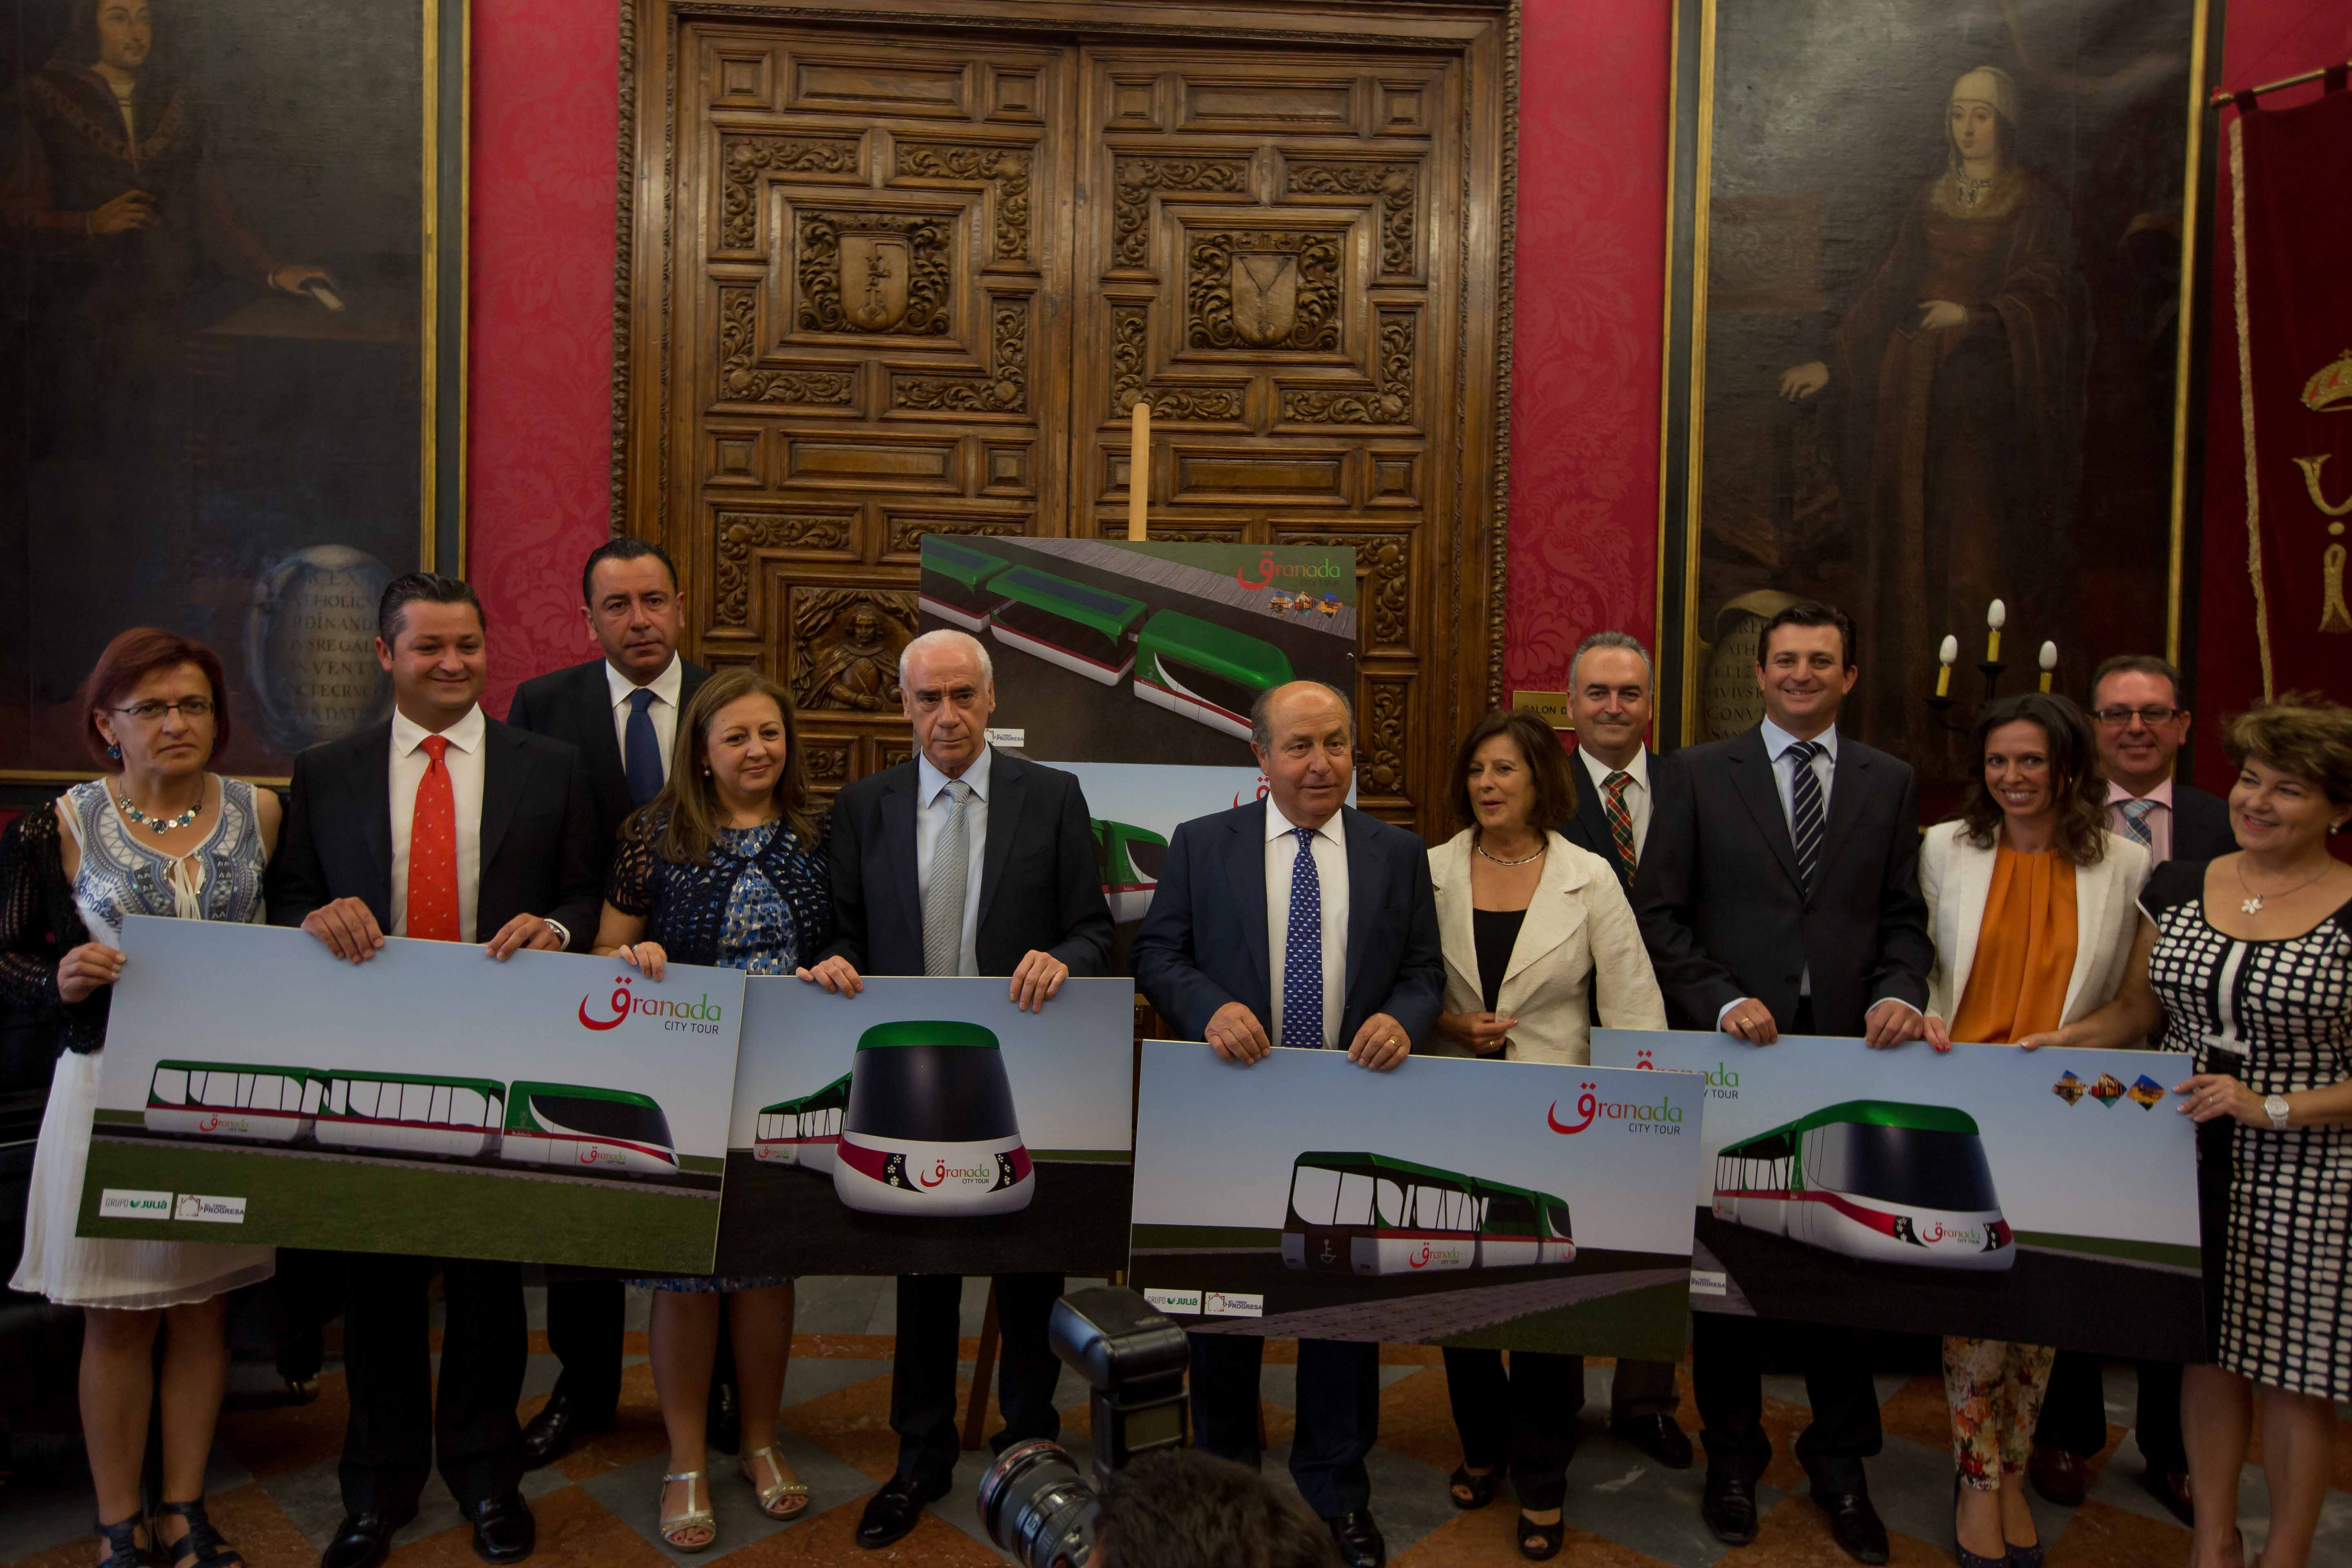 The Minister of Culture and Sport of the Regional Government of Andalusia presents the project for the Tourist Train connecting the Alhambra with Granada and the Albaicín.